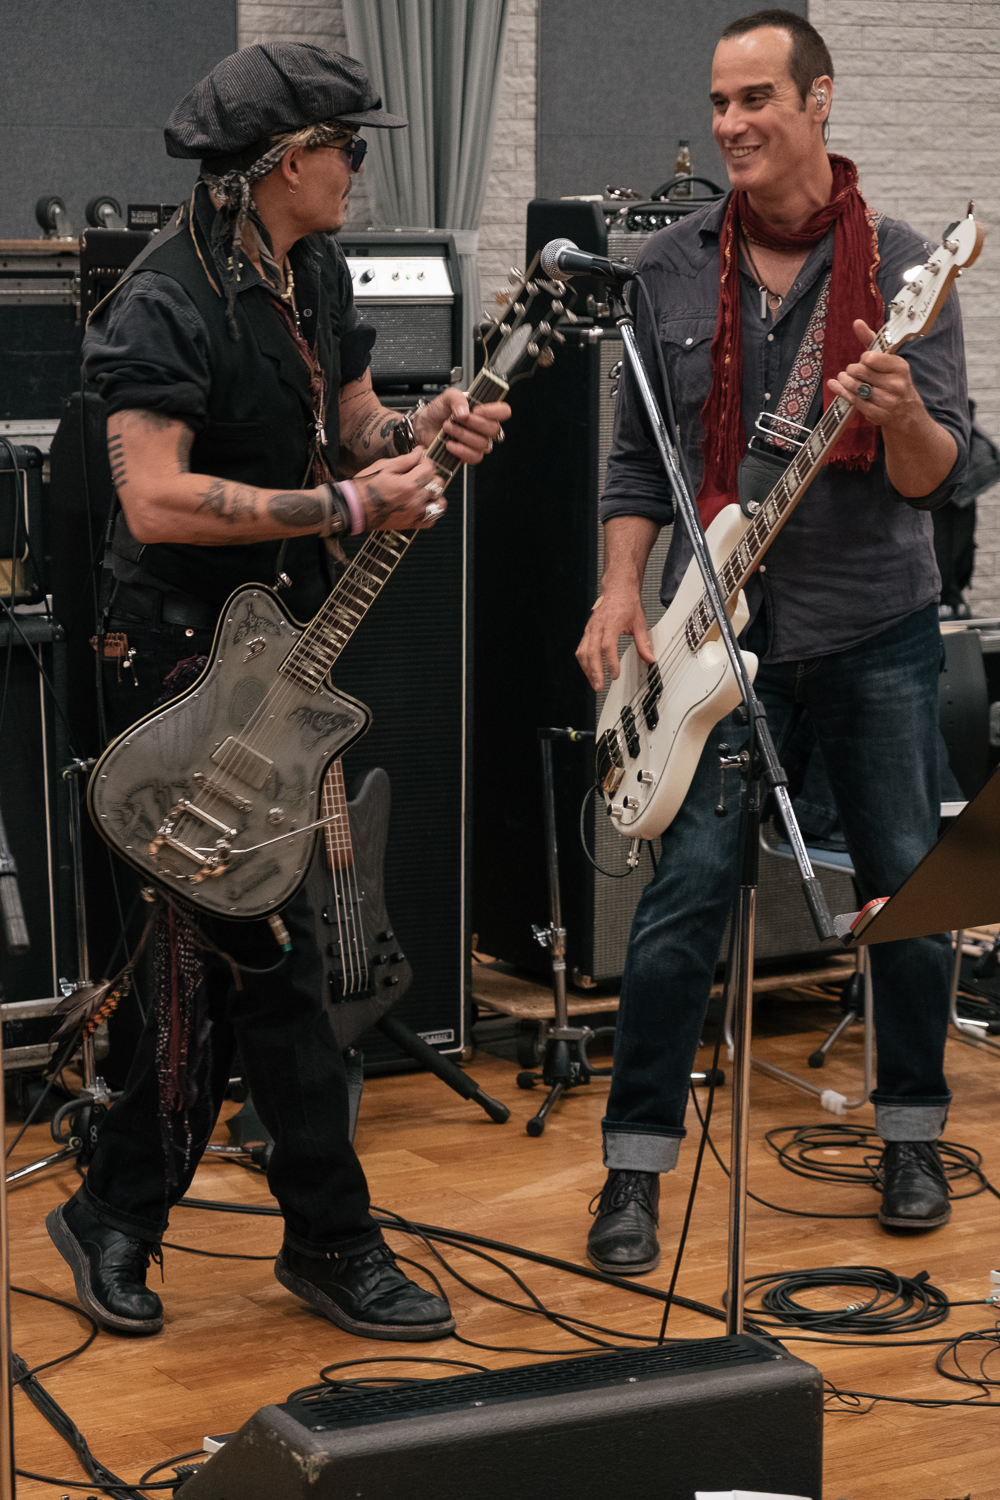 Johnny Depp and Robert DeLeo, Rehearsals for the Japan Classic Rock Awards